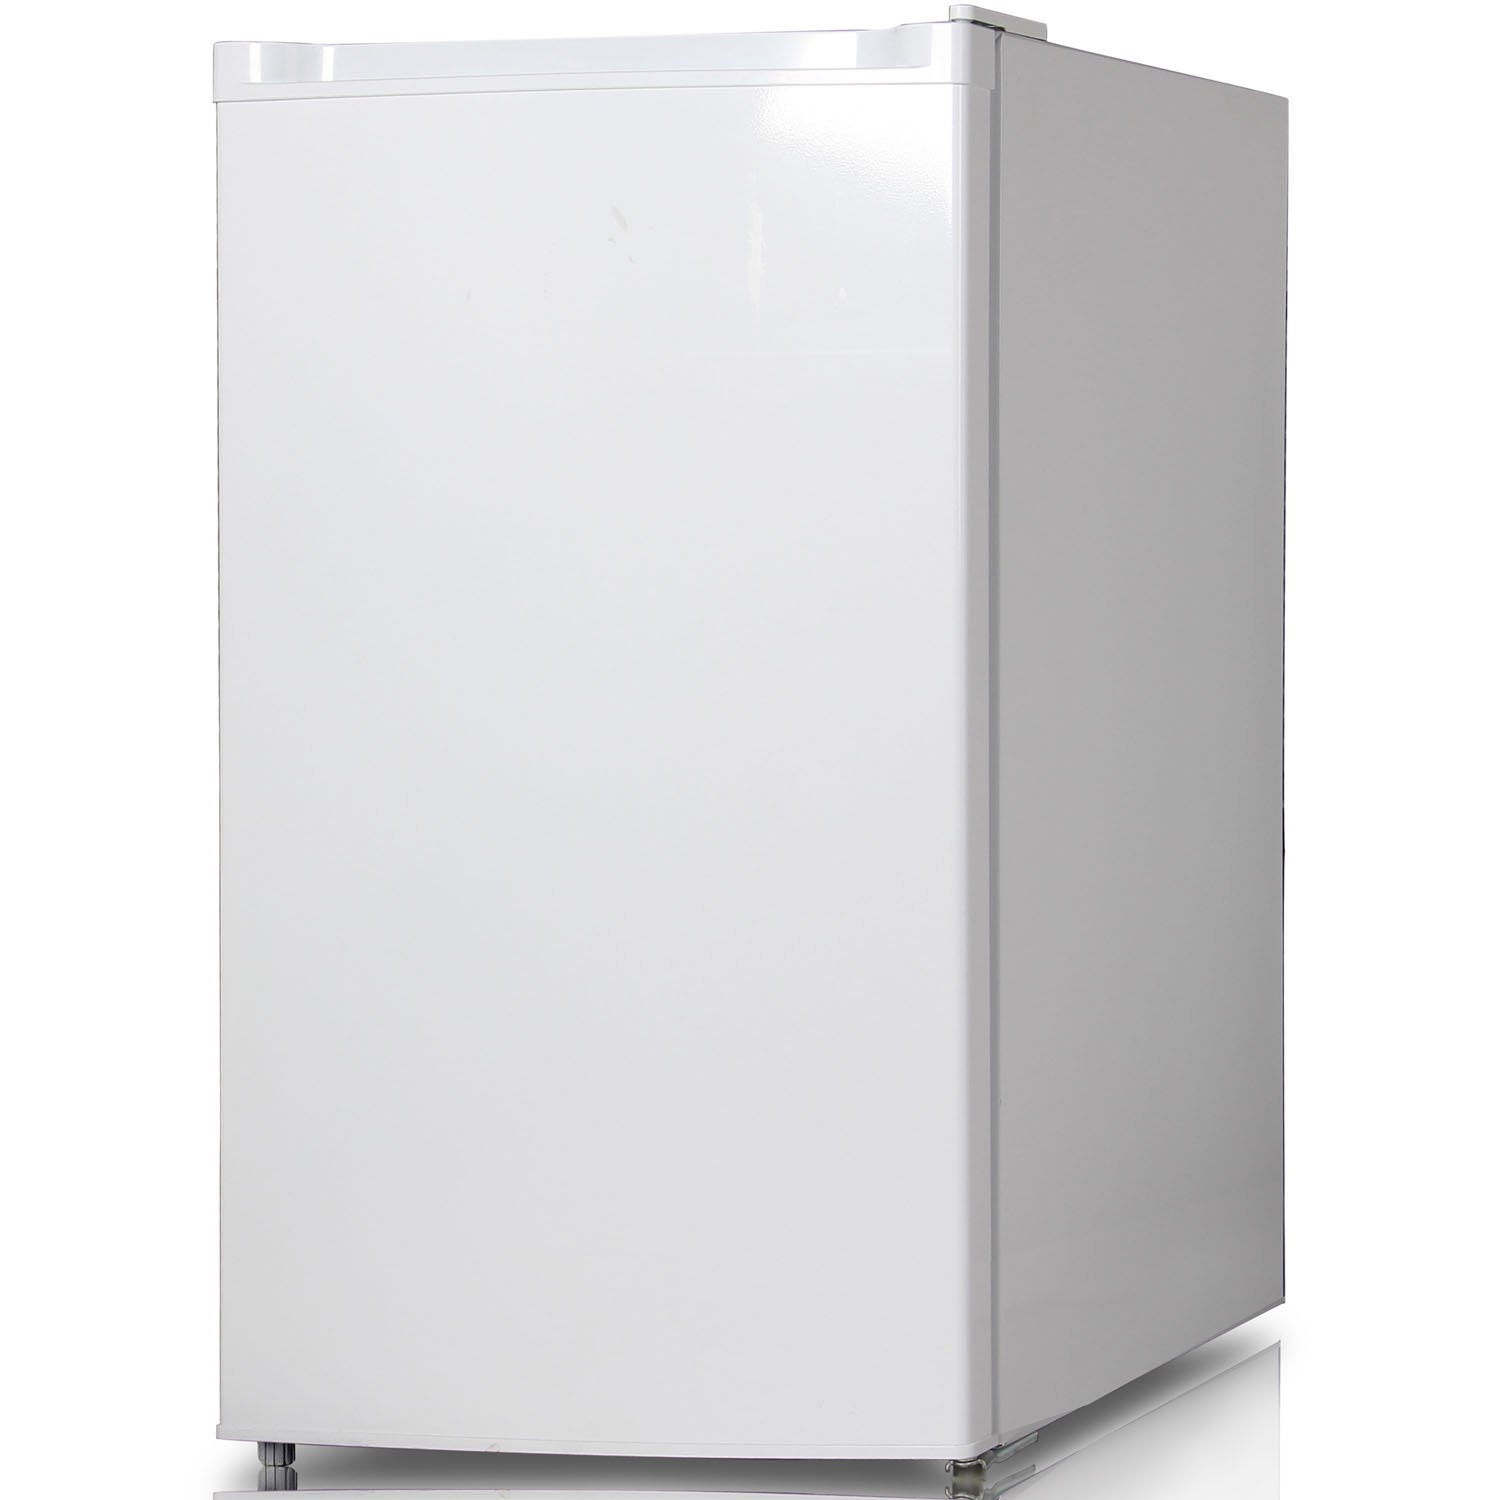 Keystone KSTRC44CW Compact Single-Door Refrigerator with Freezer Section, 4.4 Cubic Feet, White